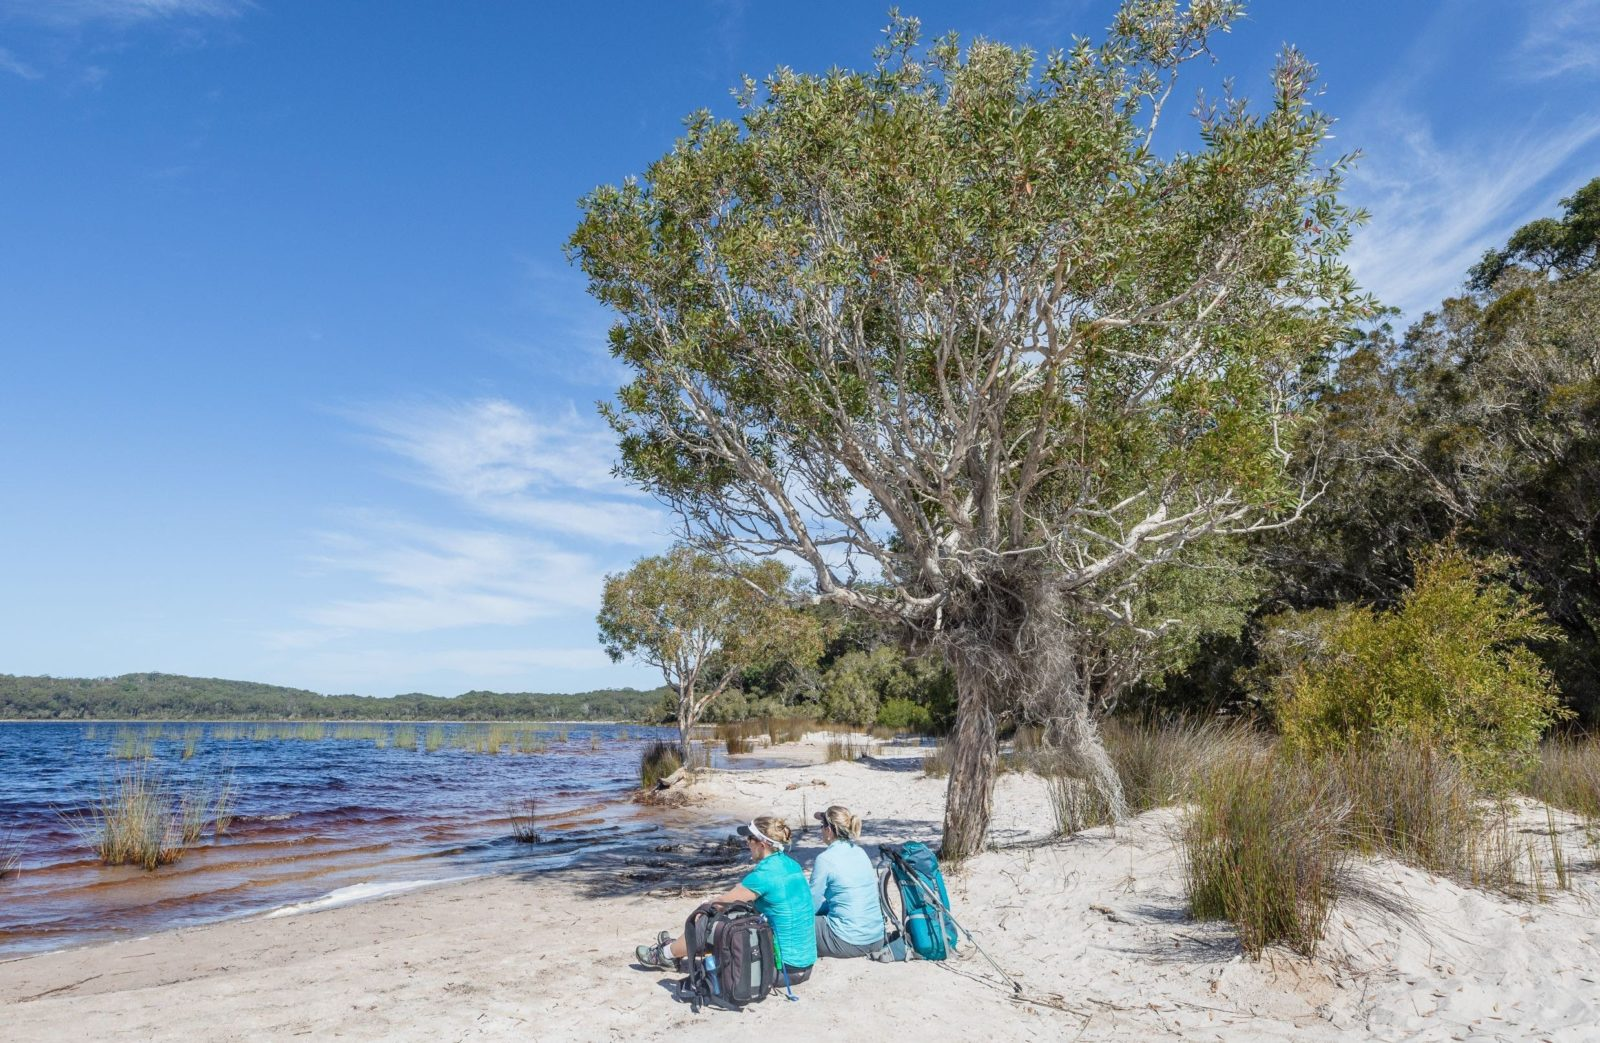 photo showing two hikers sitting on a sandy beach at Lake Birrabeen